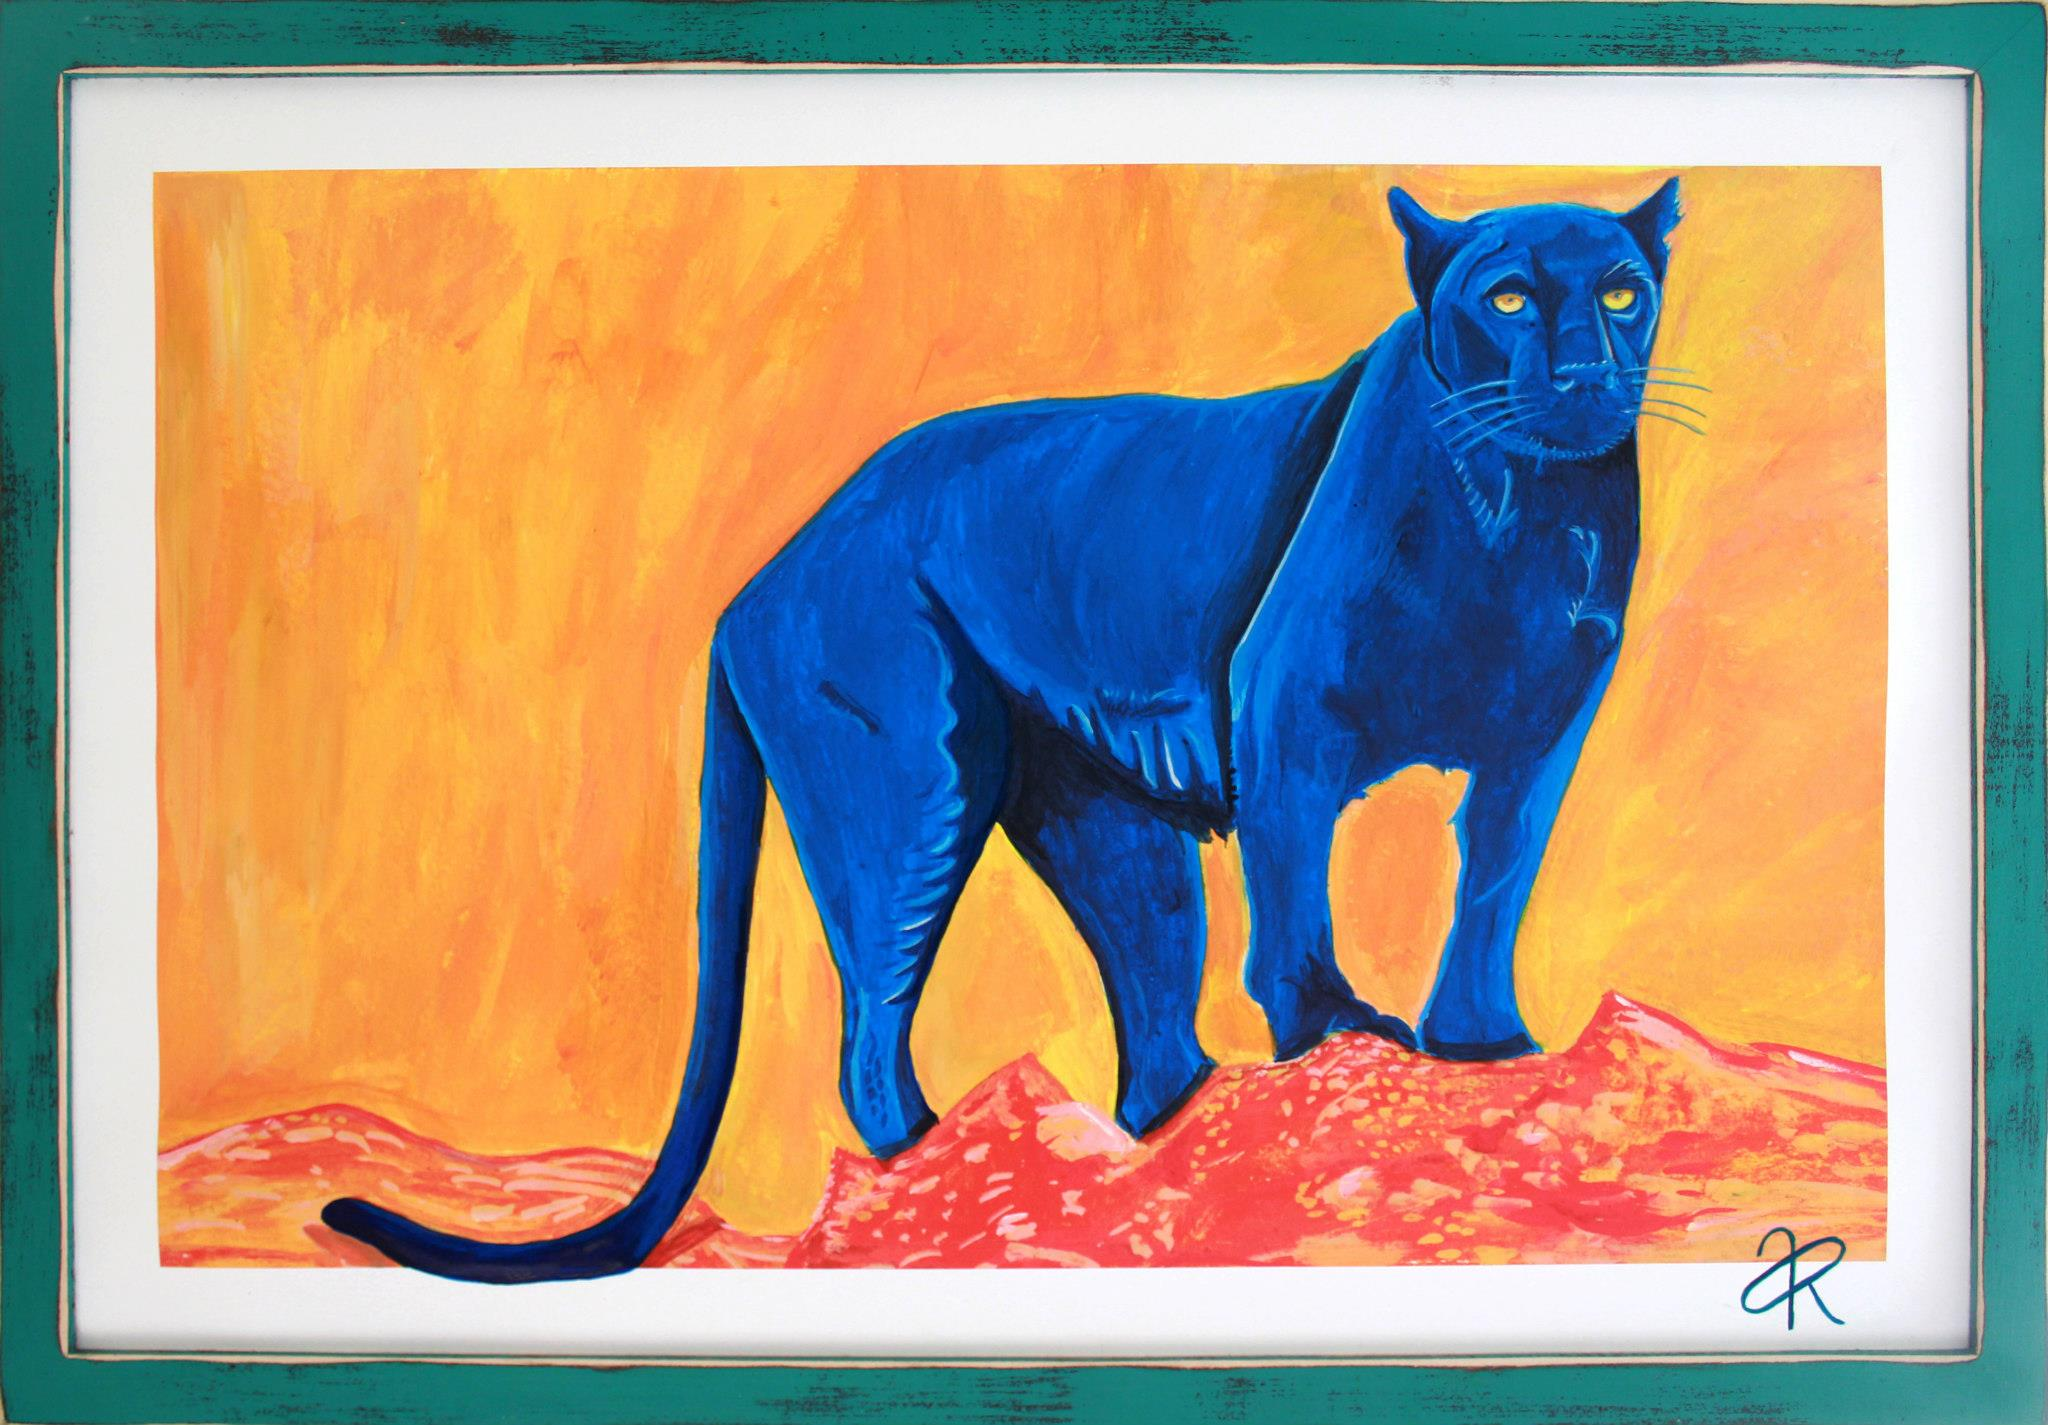 Zoey's panther